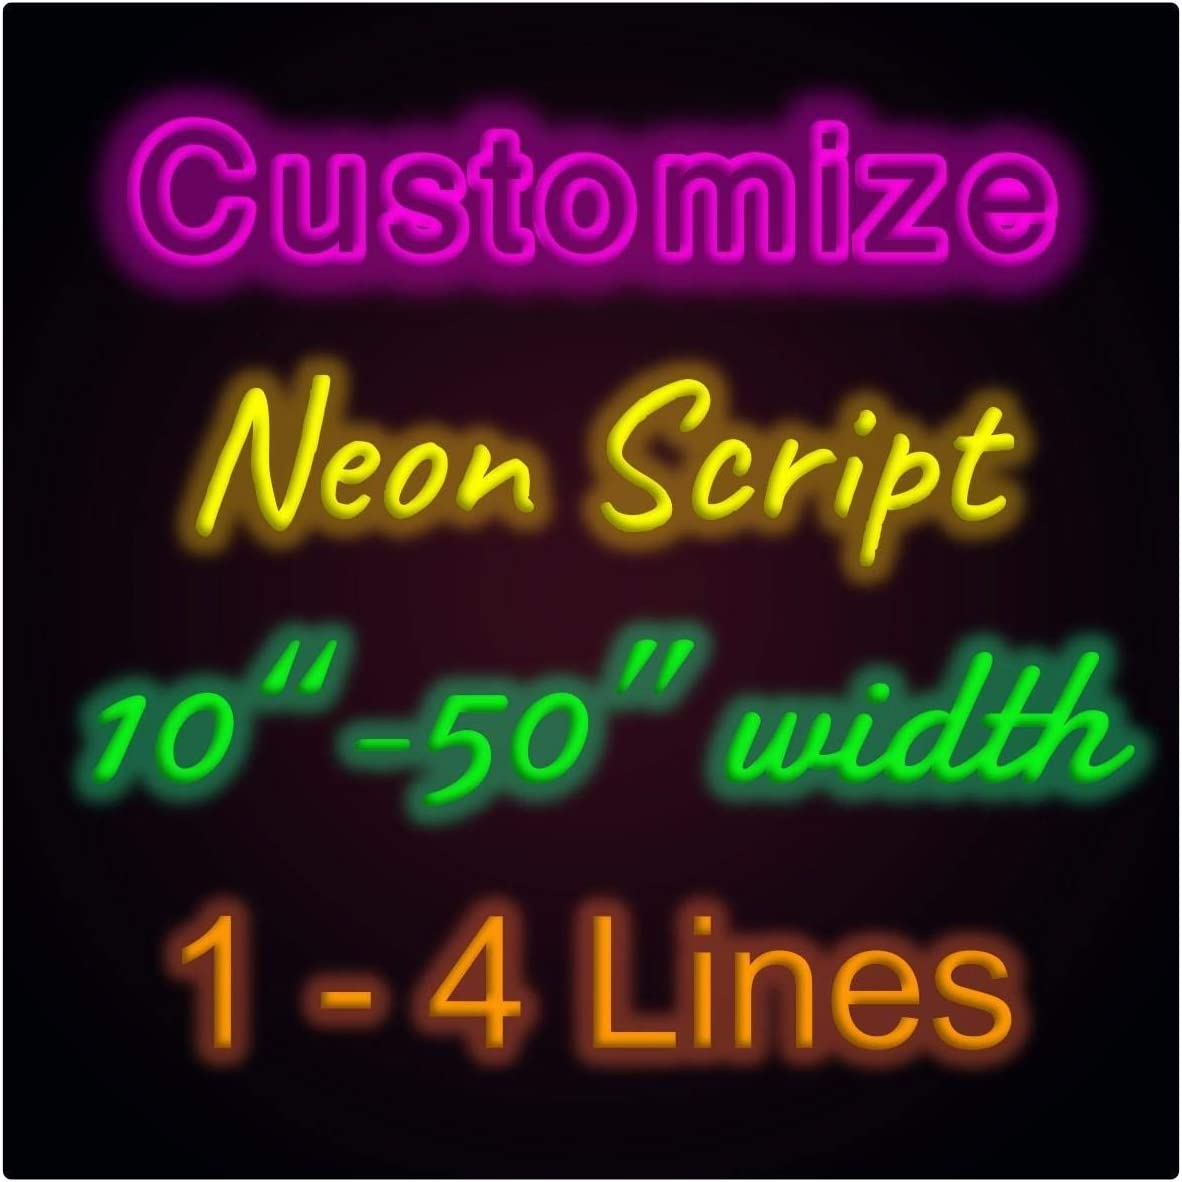 Custom Neon Signs Neon Led Personalized Neon Signs Neon Letter Lights Dimmable Handmade Wall Bedroom Party Decor (Customization: Color, Size, Font, Backboards, Wall Mounted, Window/Ceiling, Etc.)